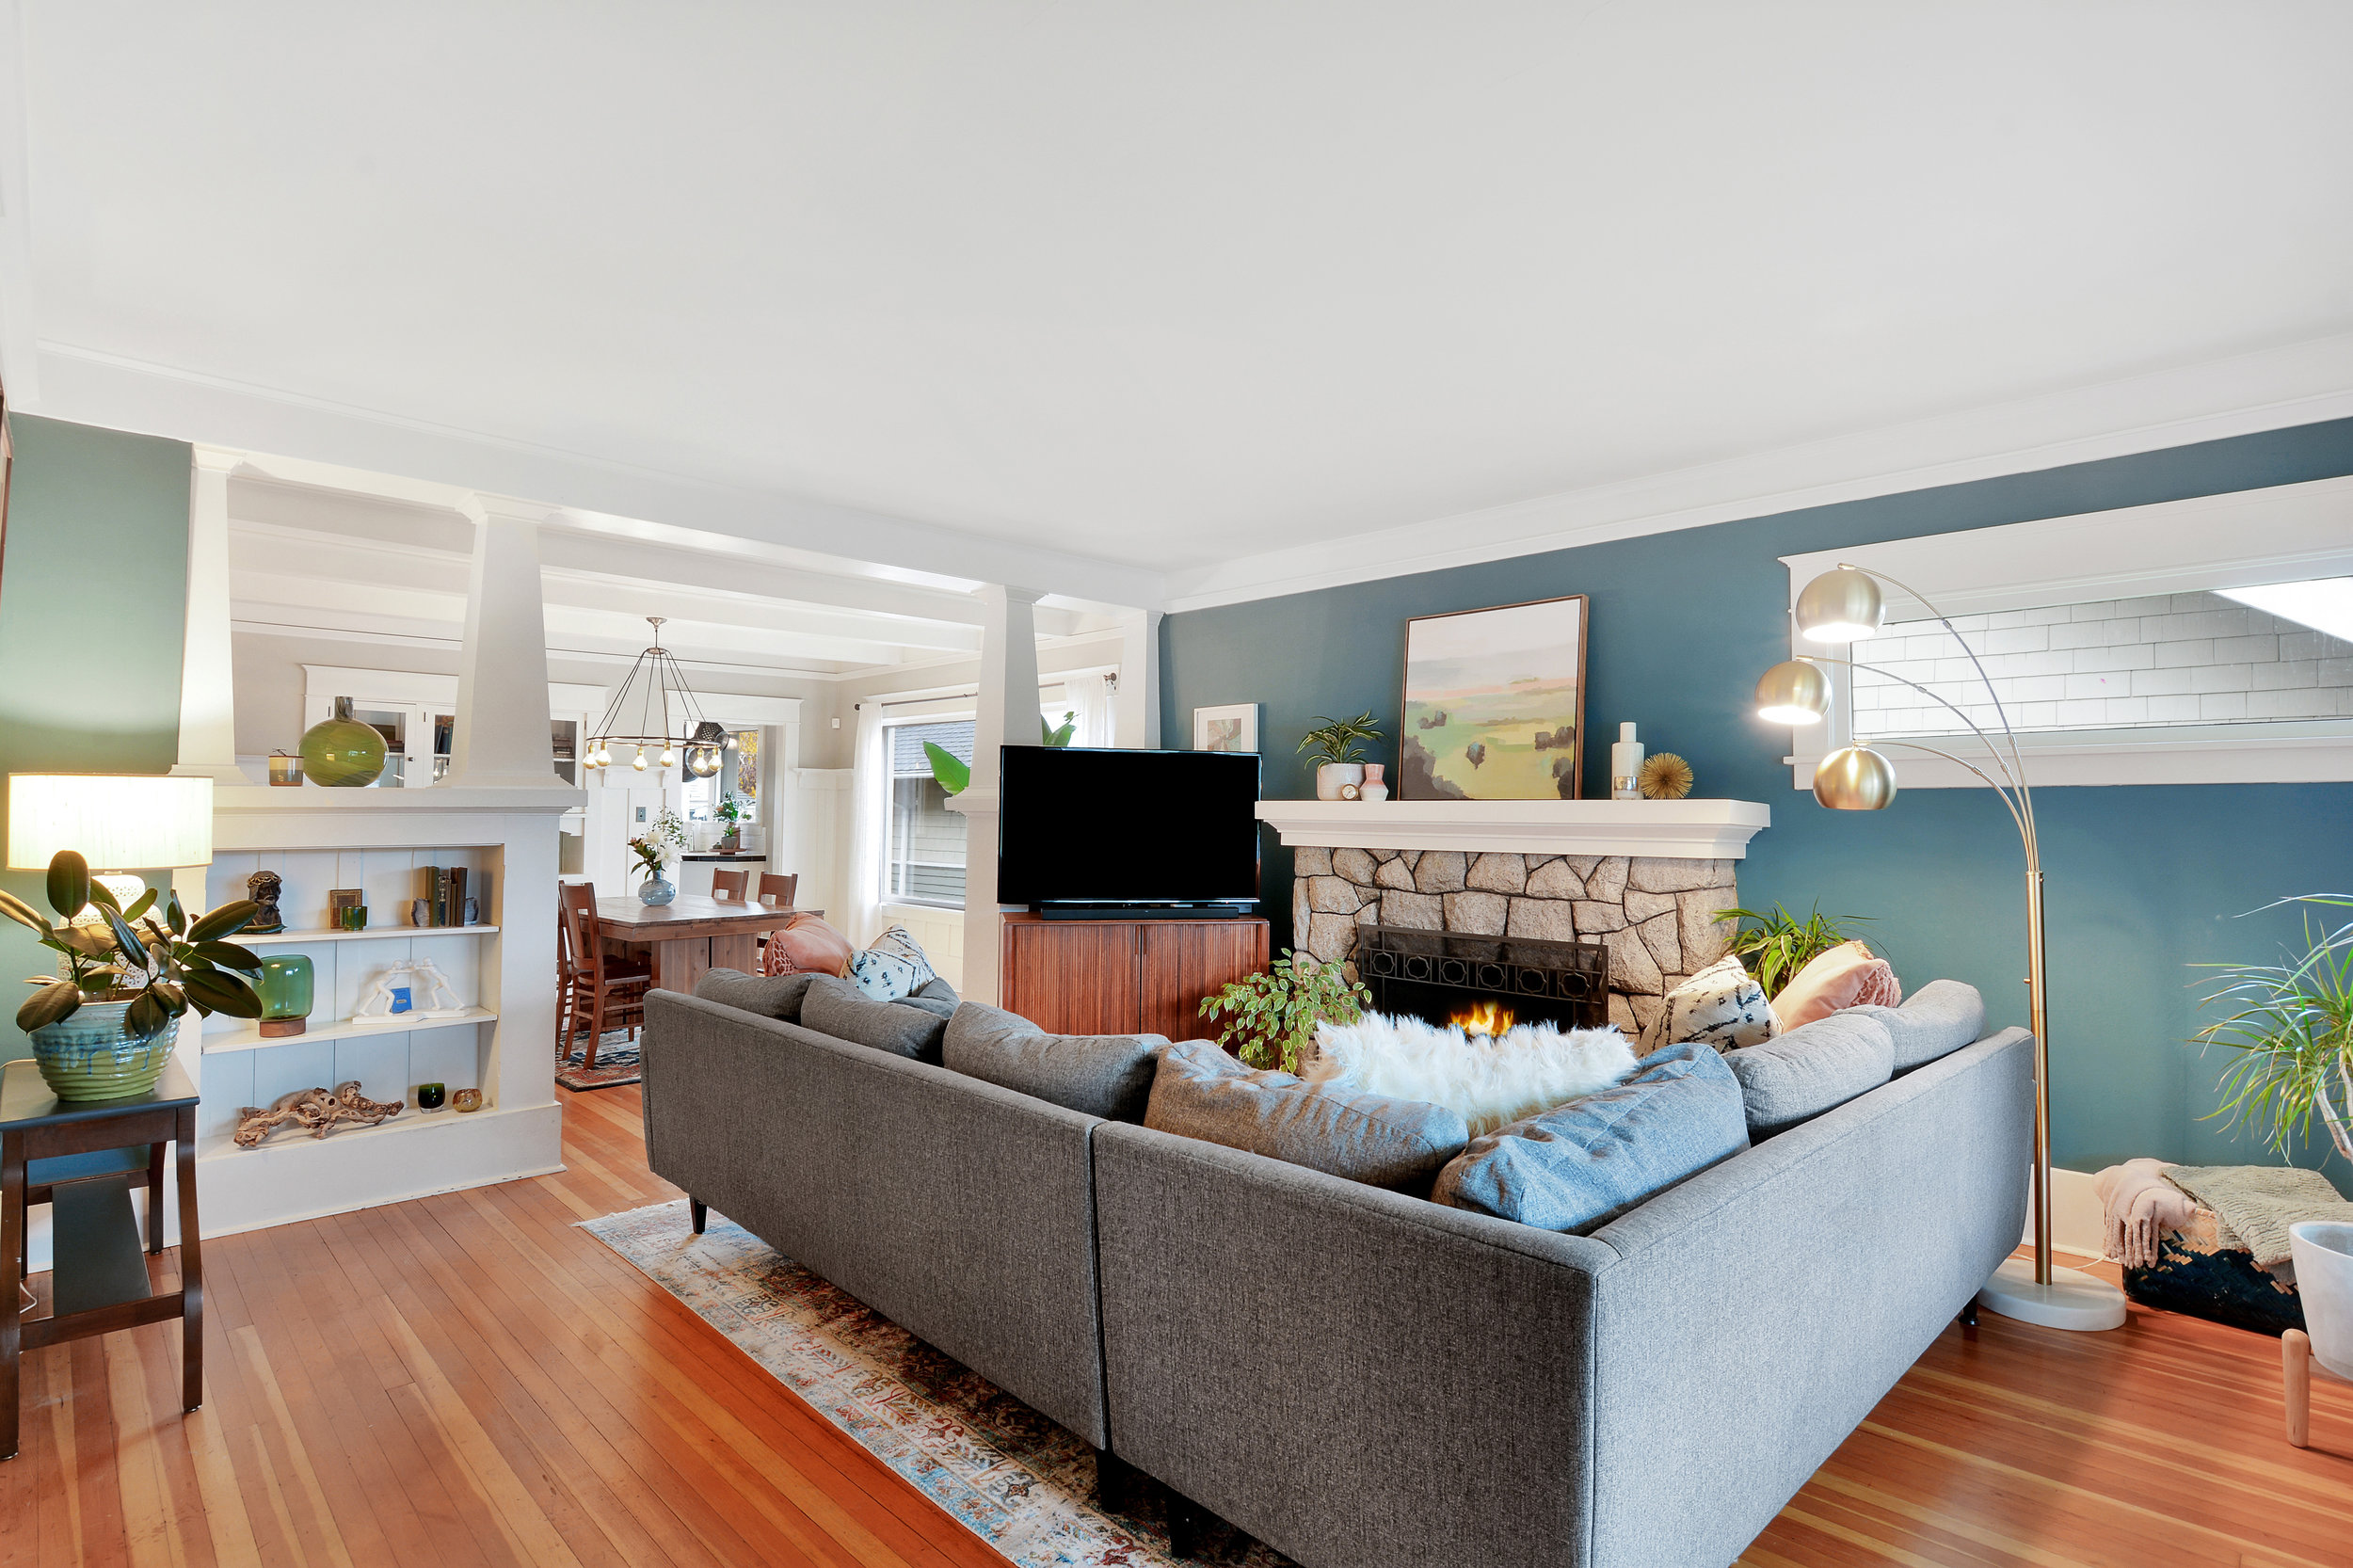 Another living room view featuring the oblong window and showing-off the colorful fir floors.